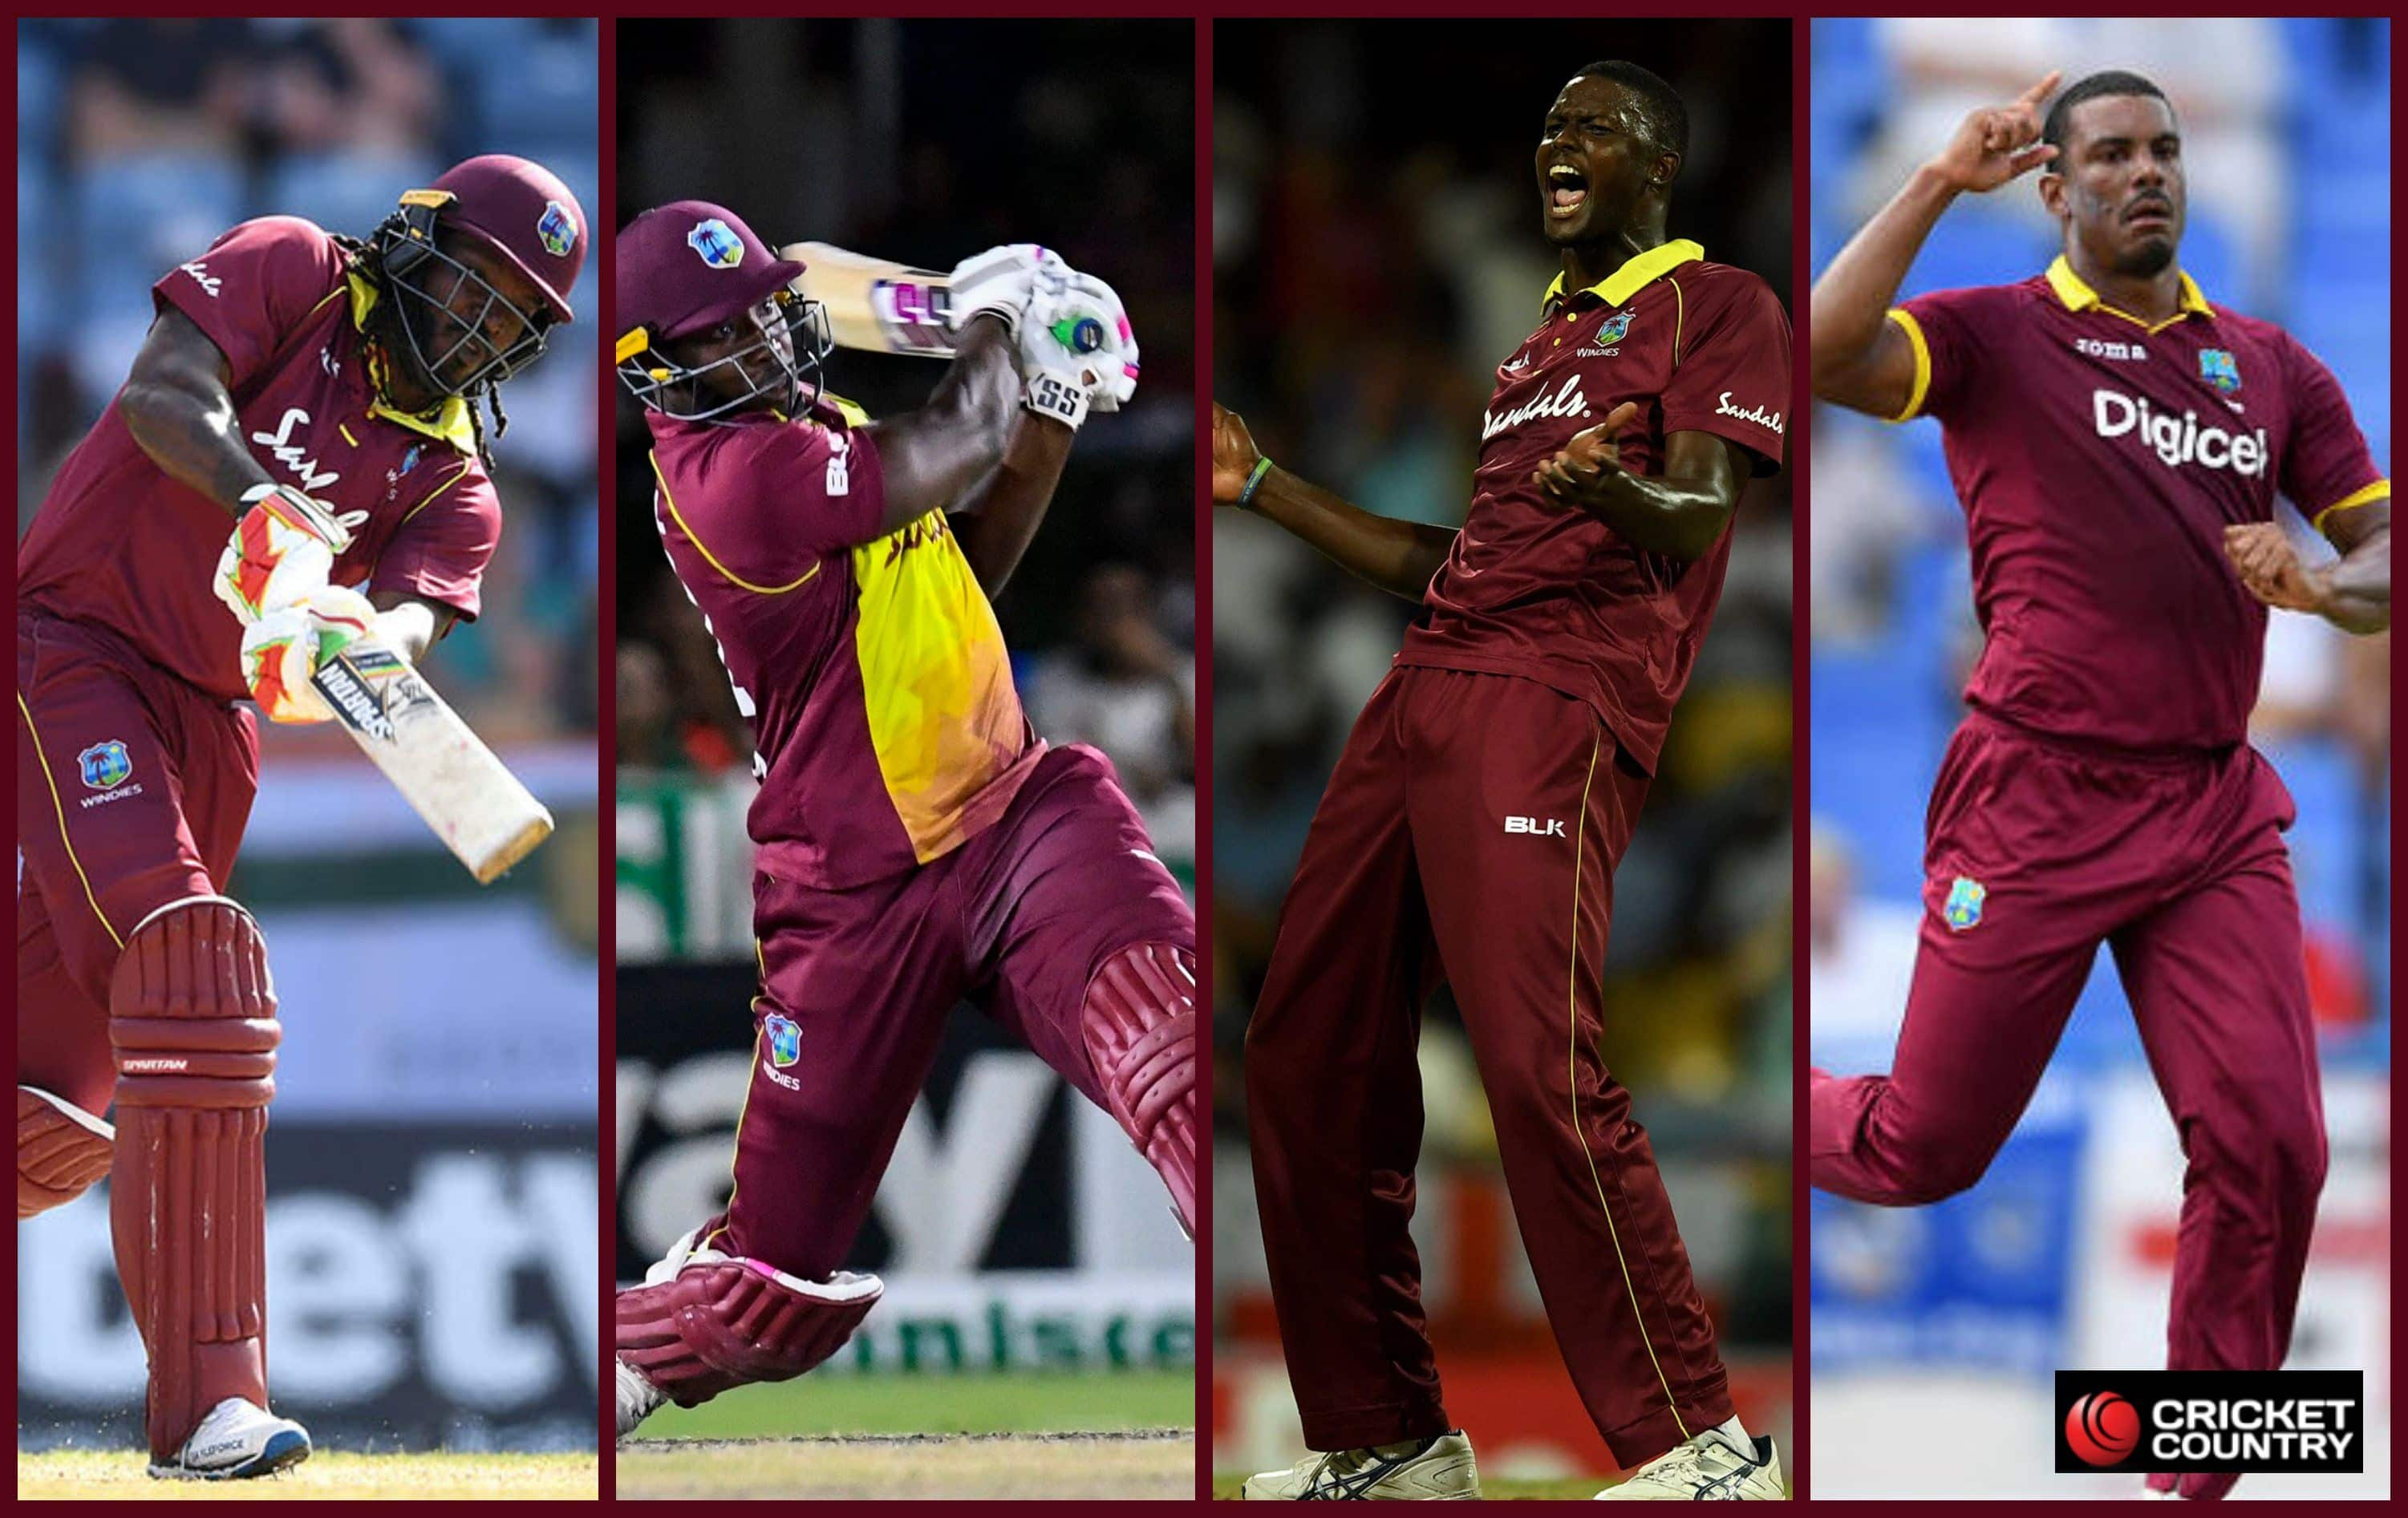 Windies name Gayle in CWC squad, Pollard misses out